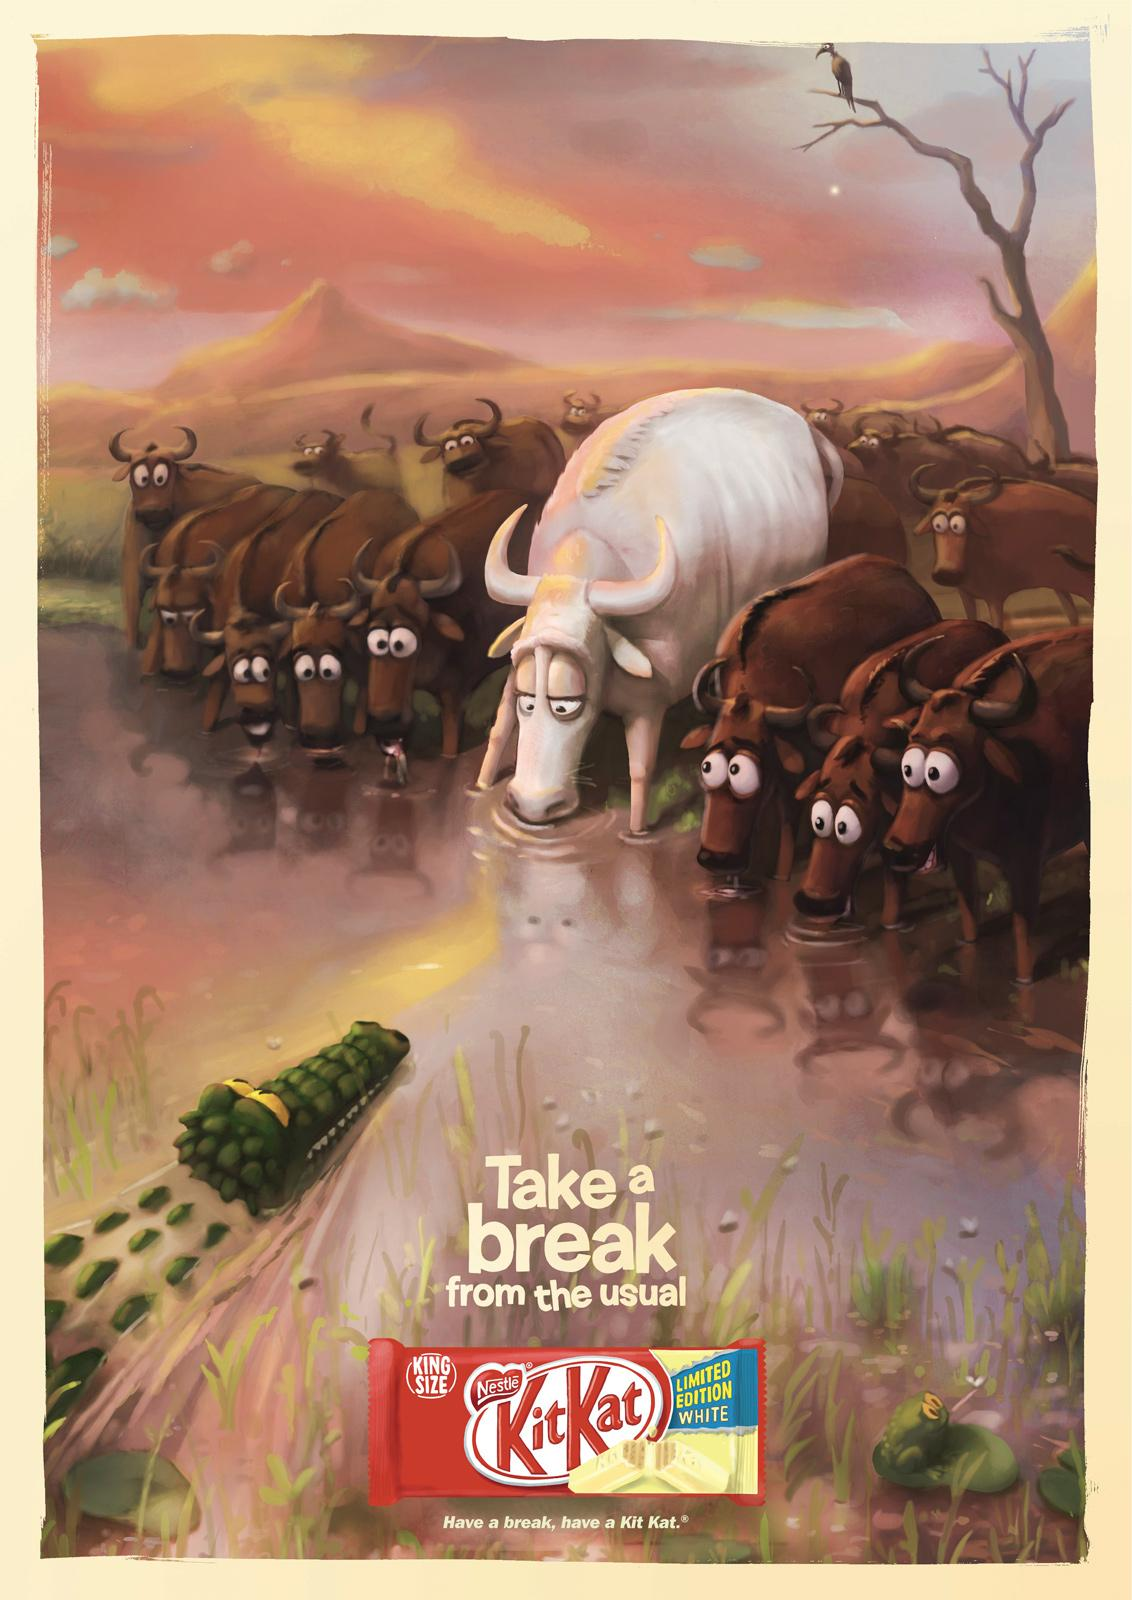 Kit Kat Outdoor Ad -  Take a break from the usual, Croc